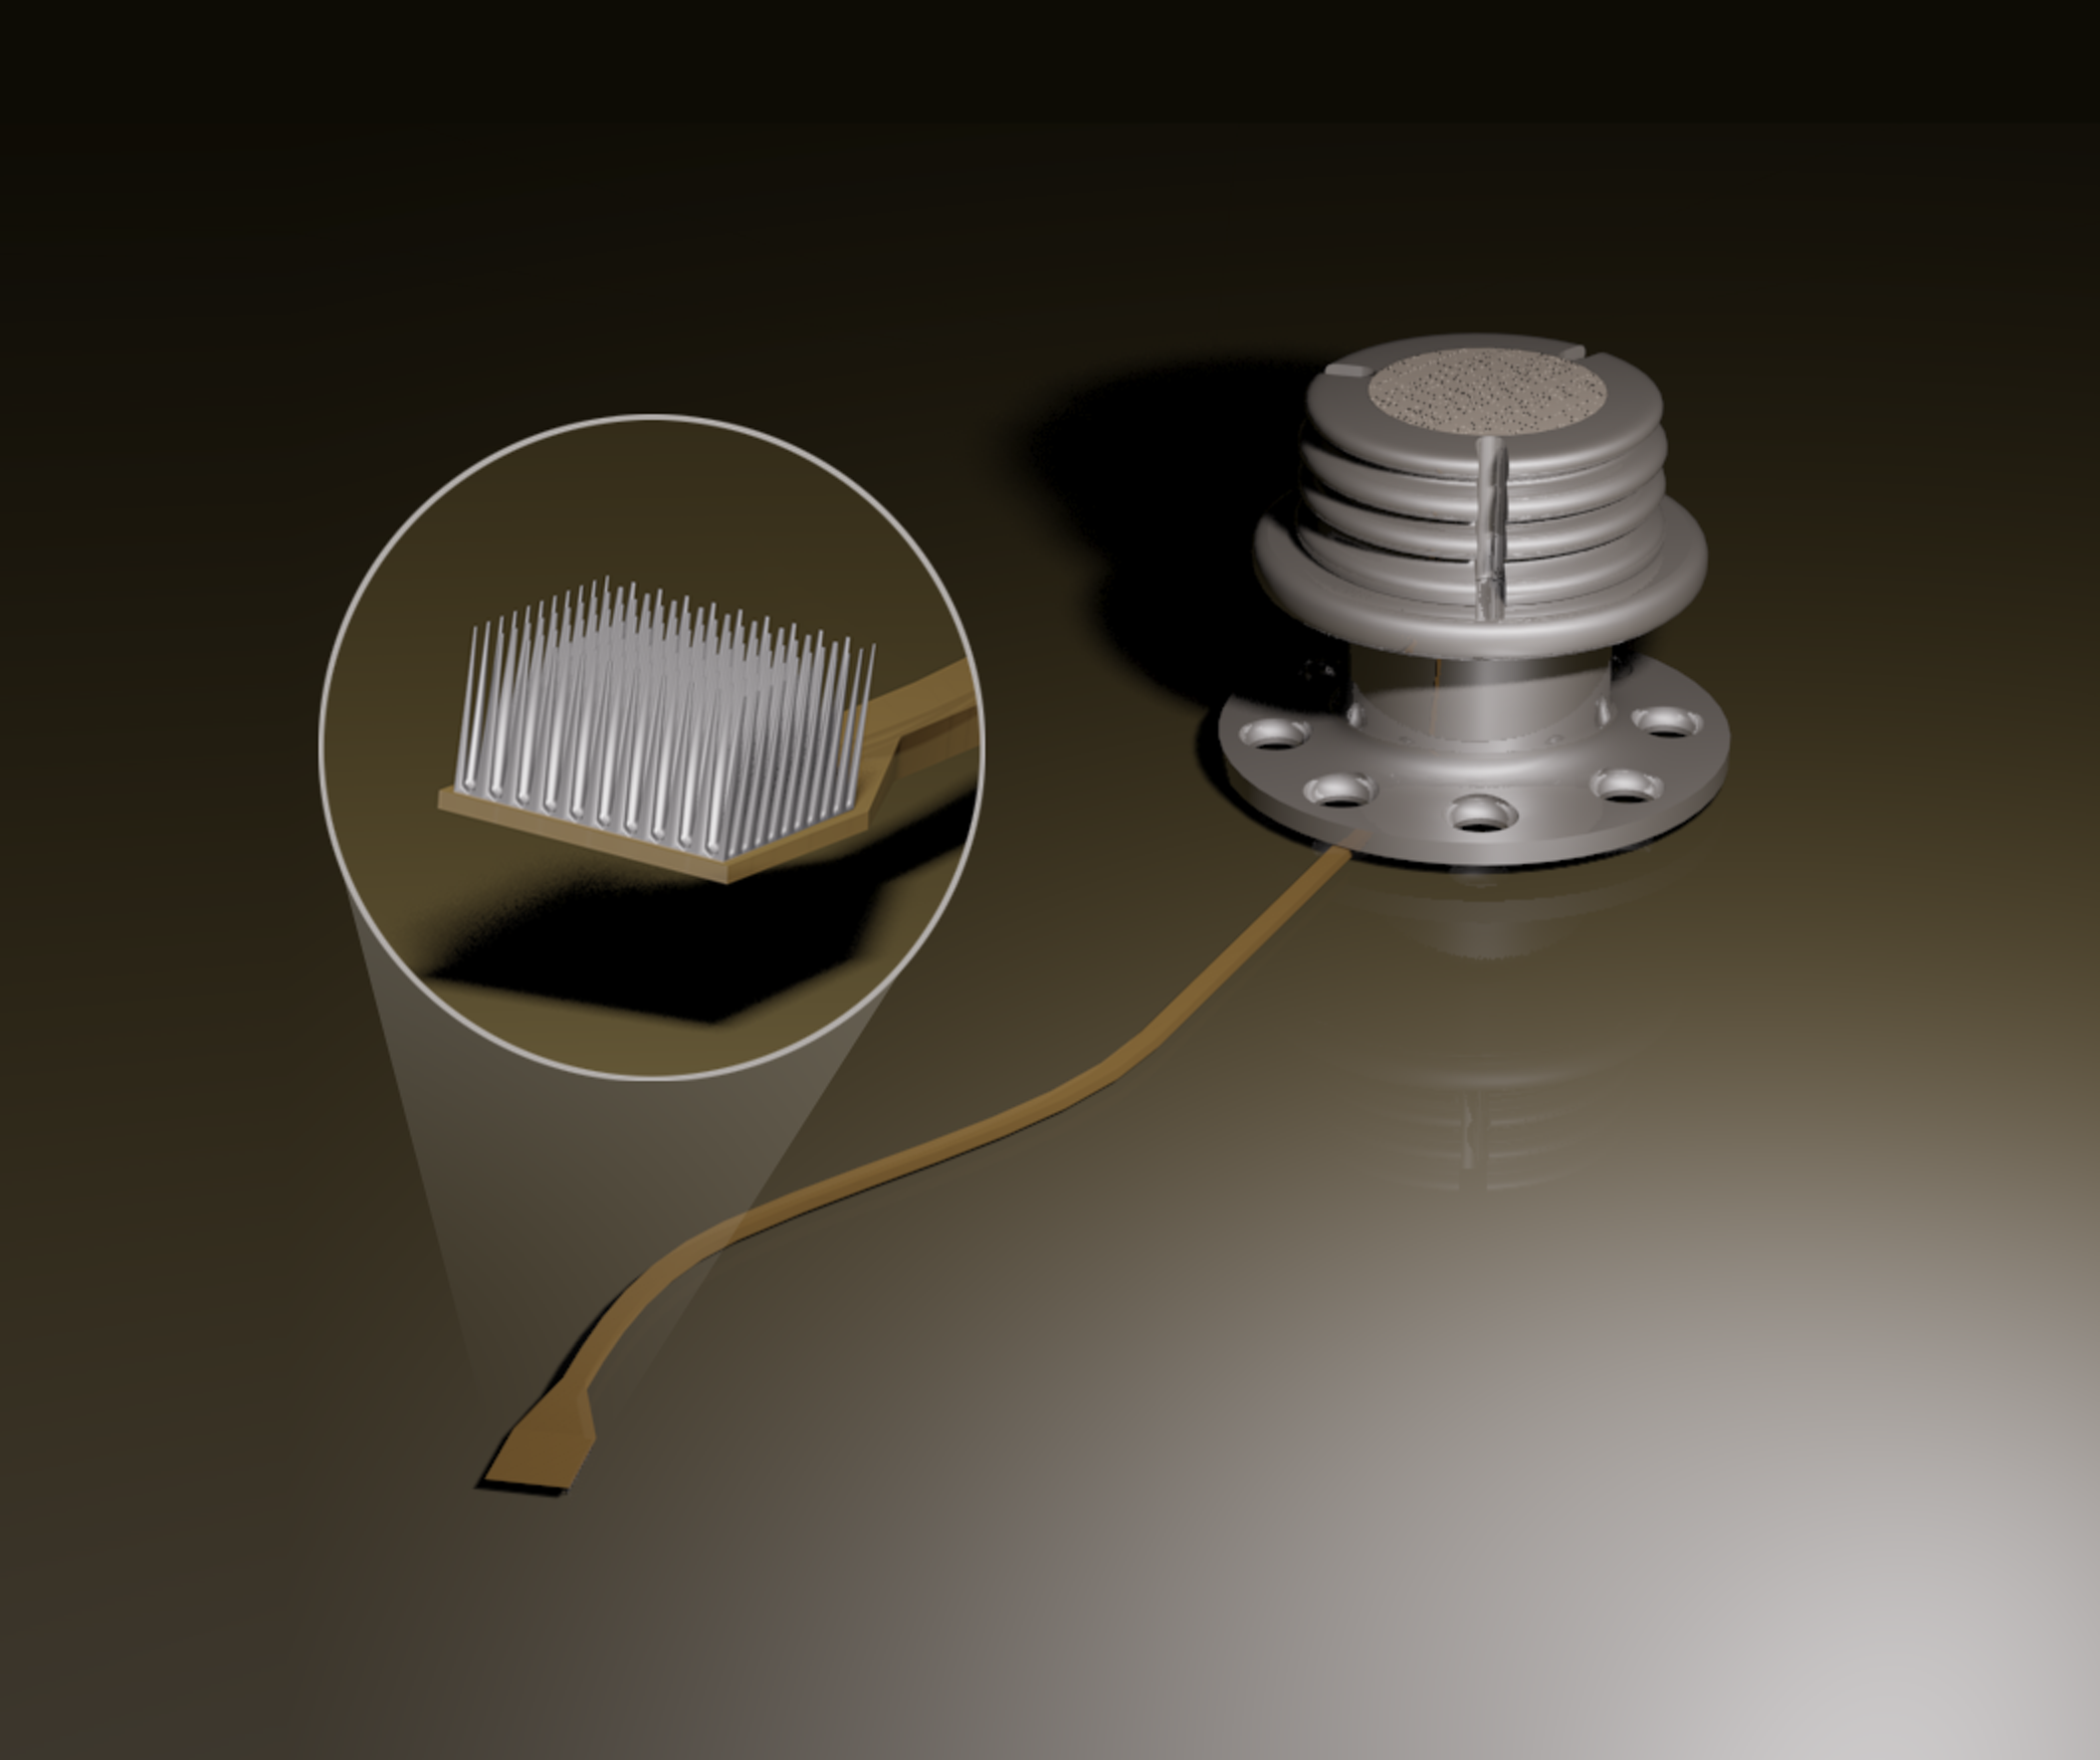 An illustration of the microelectrode array.